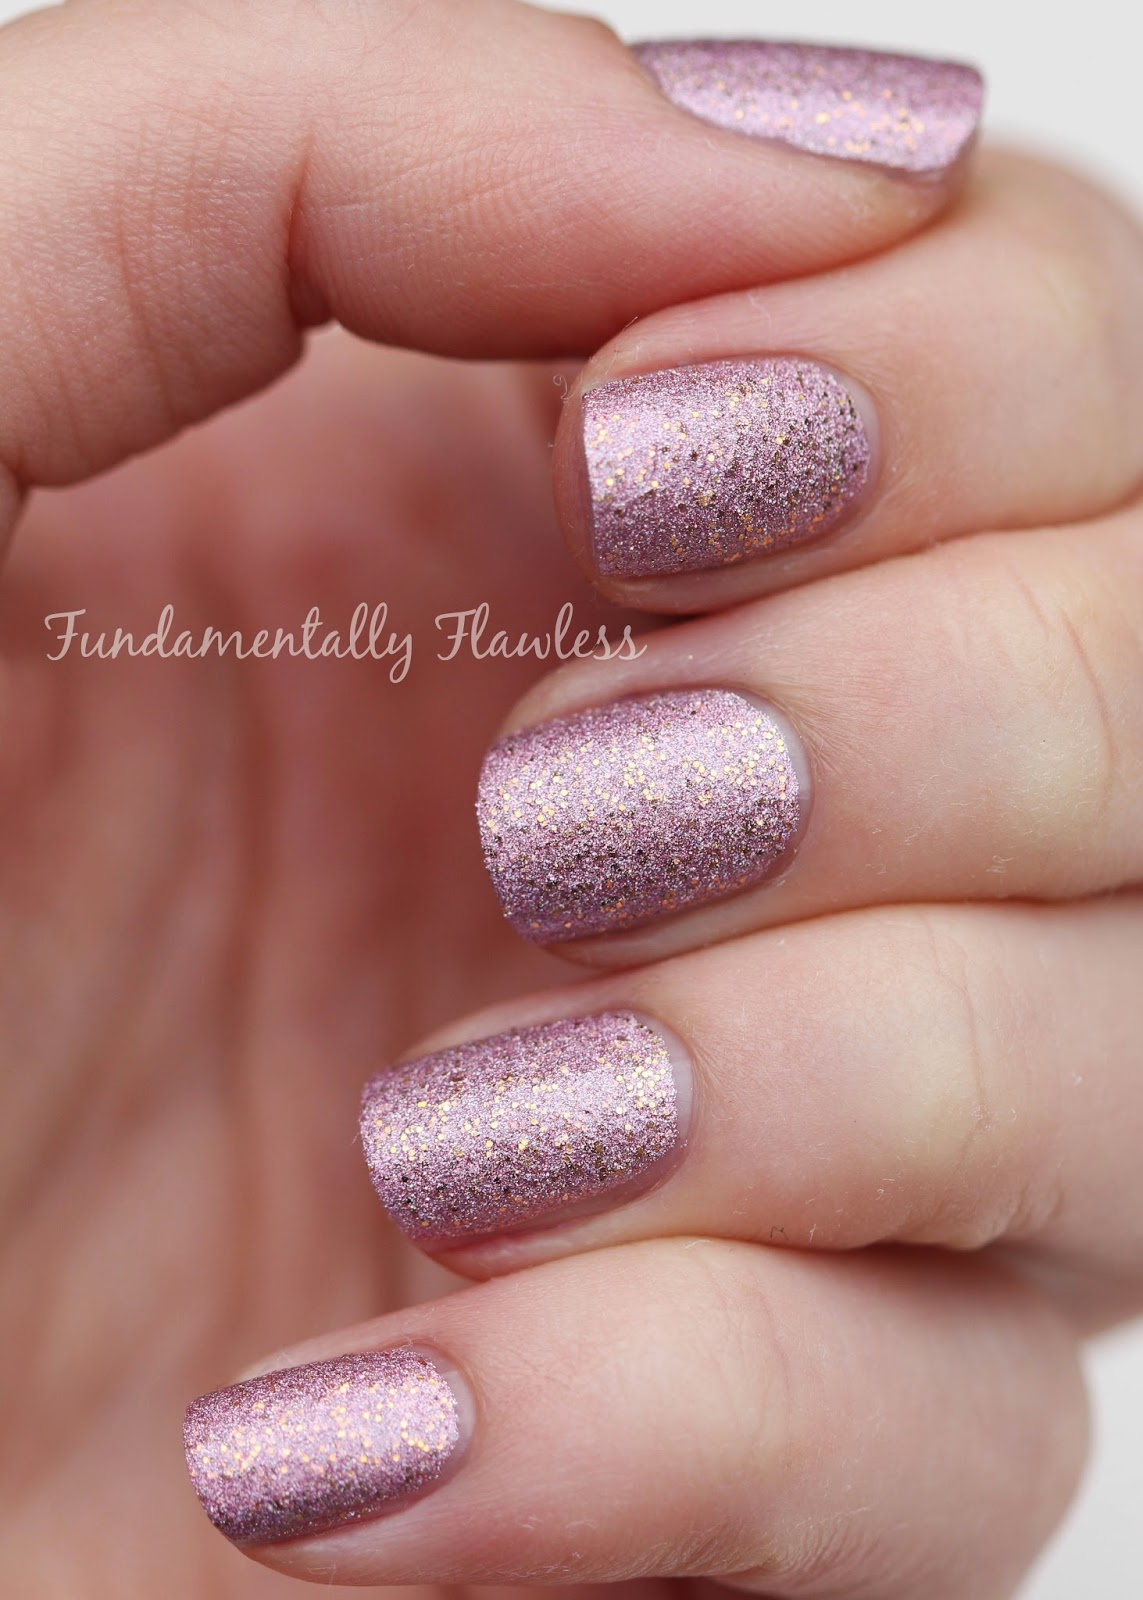 Tami Beauty Gleneagles Glamour swatch